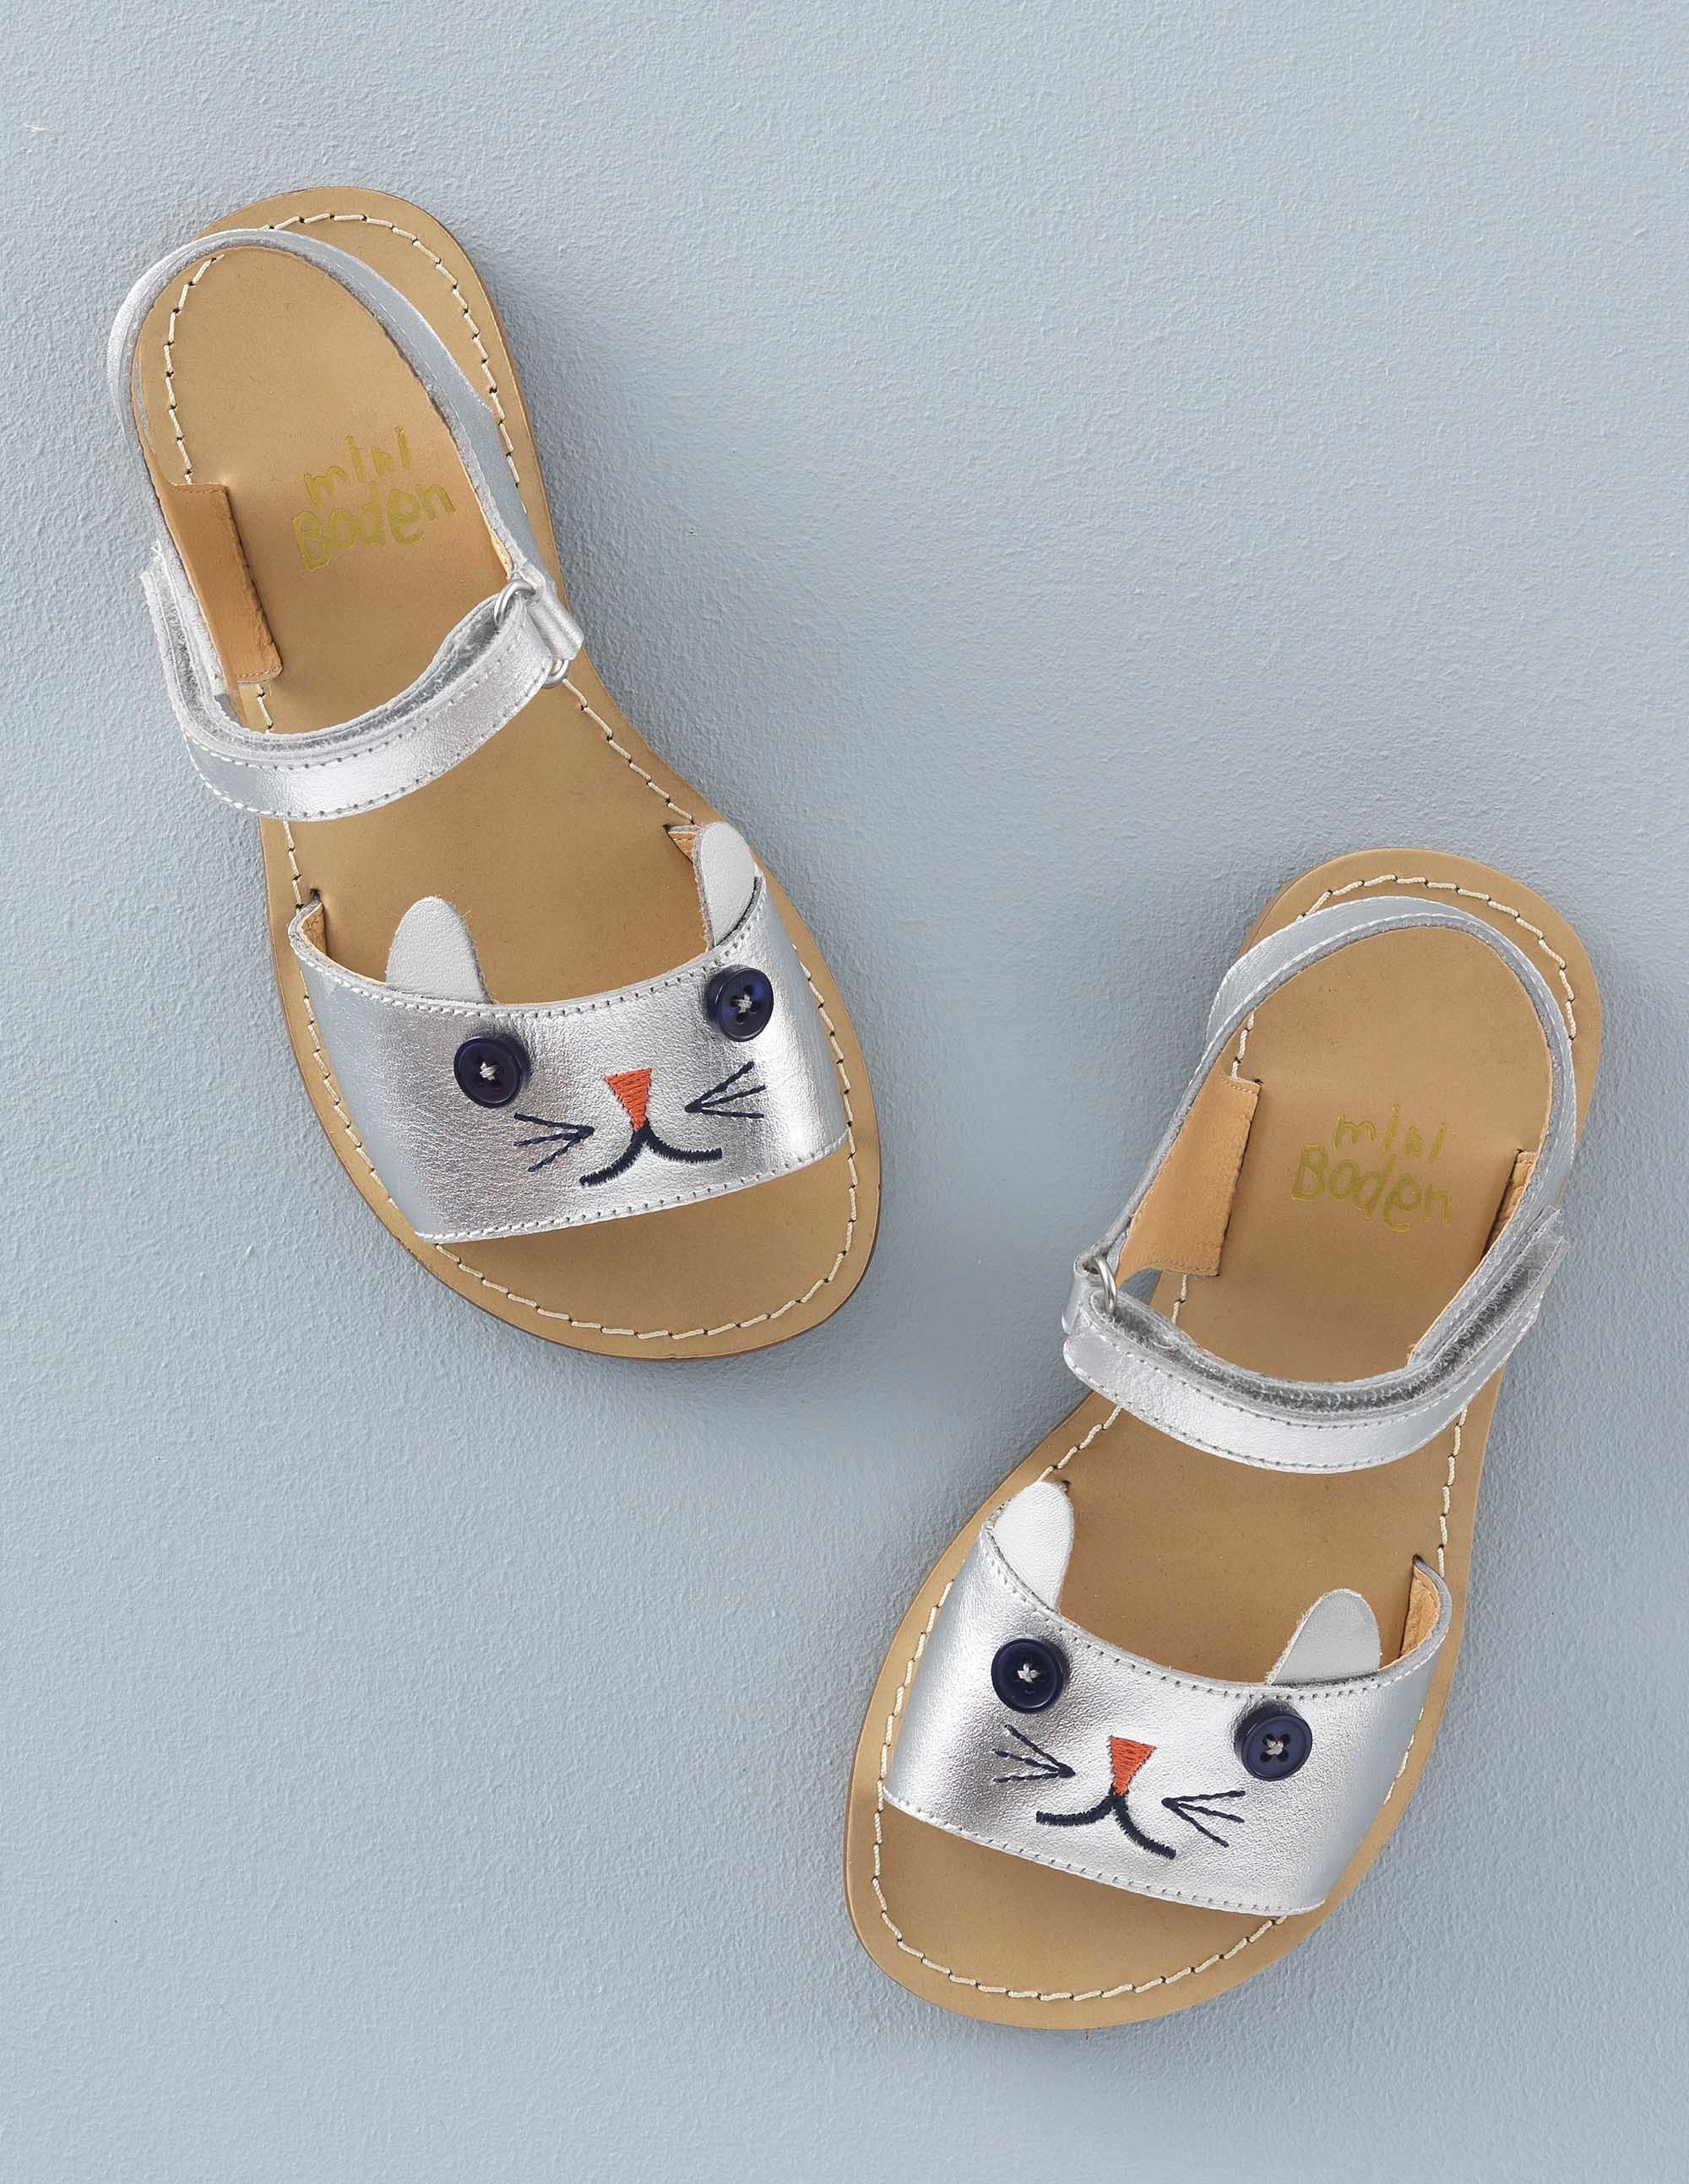 Leather Holiday Sandals. Leather Holiday Sandals Cute Shoes For Kids 874544427581